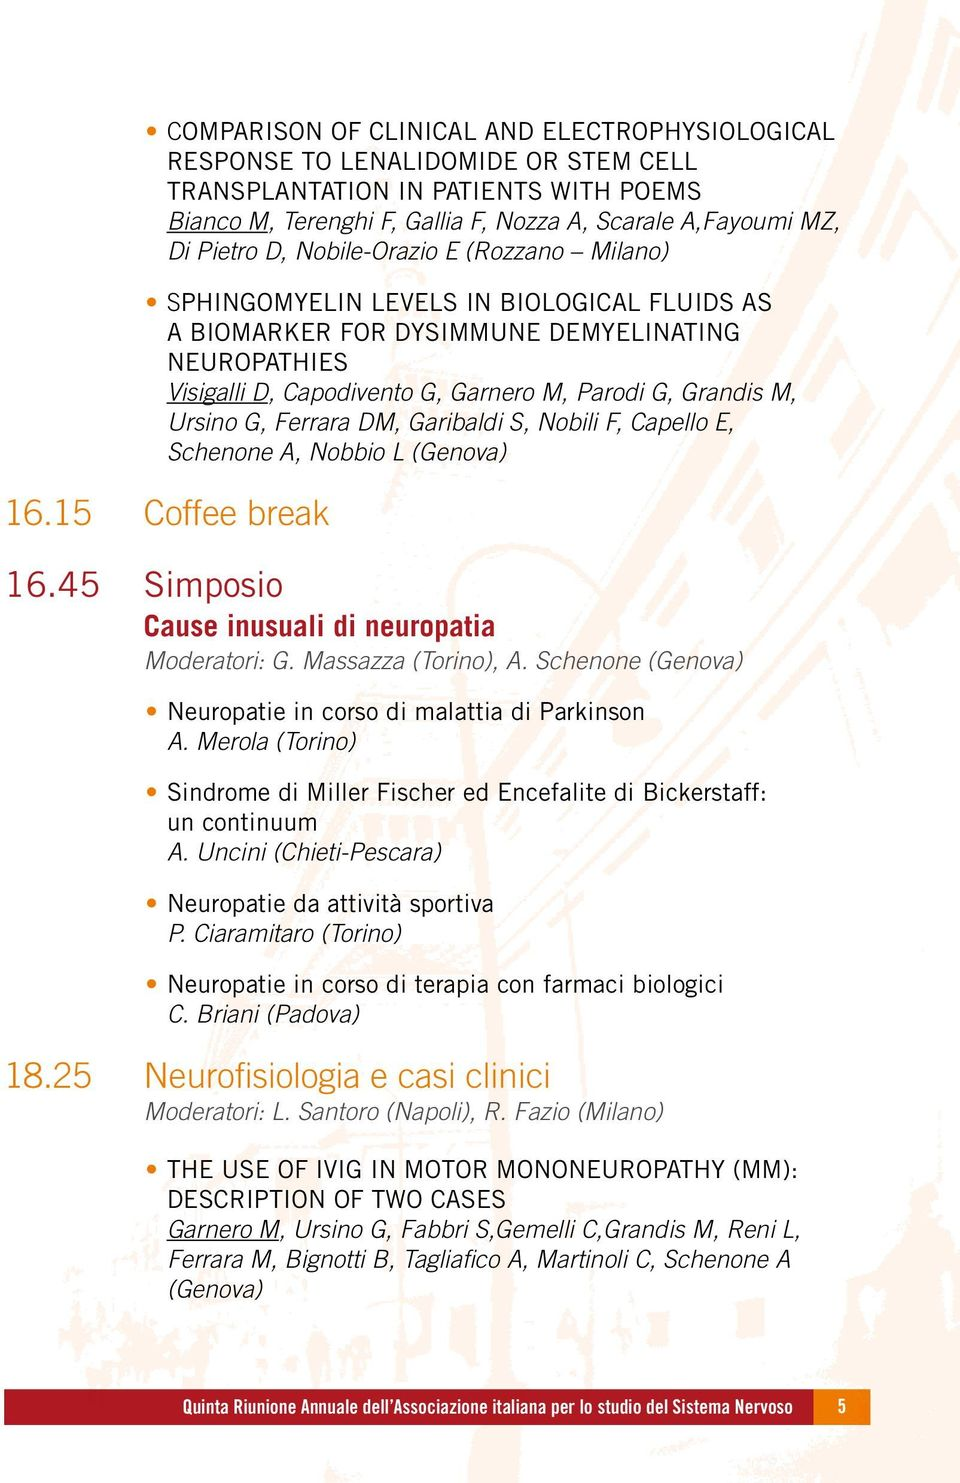 Ursino G, Ferrara DM, Garibaldi S, Nobili F, Capello E, Schenone A, Nobbio L (Genova) 16.15 Coffee break 16.45 Simposio Cause inusuali di neuropatia Moderatori: G. Massazza (Torino), A.